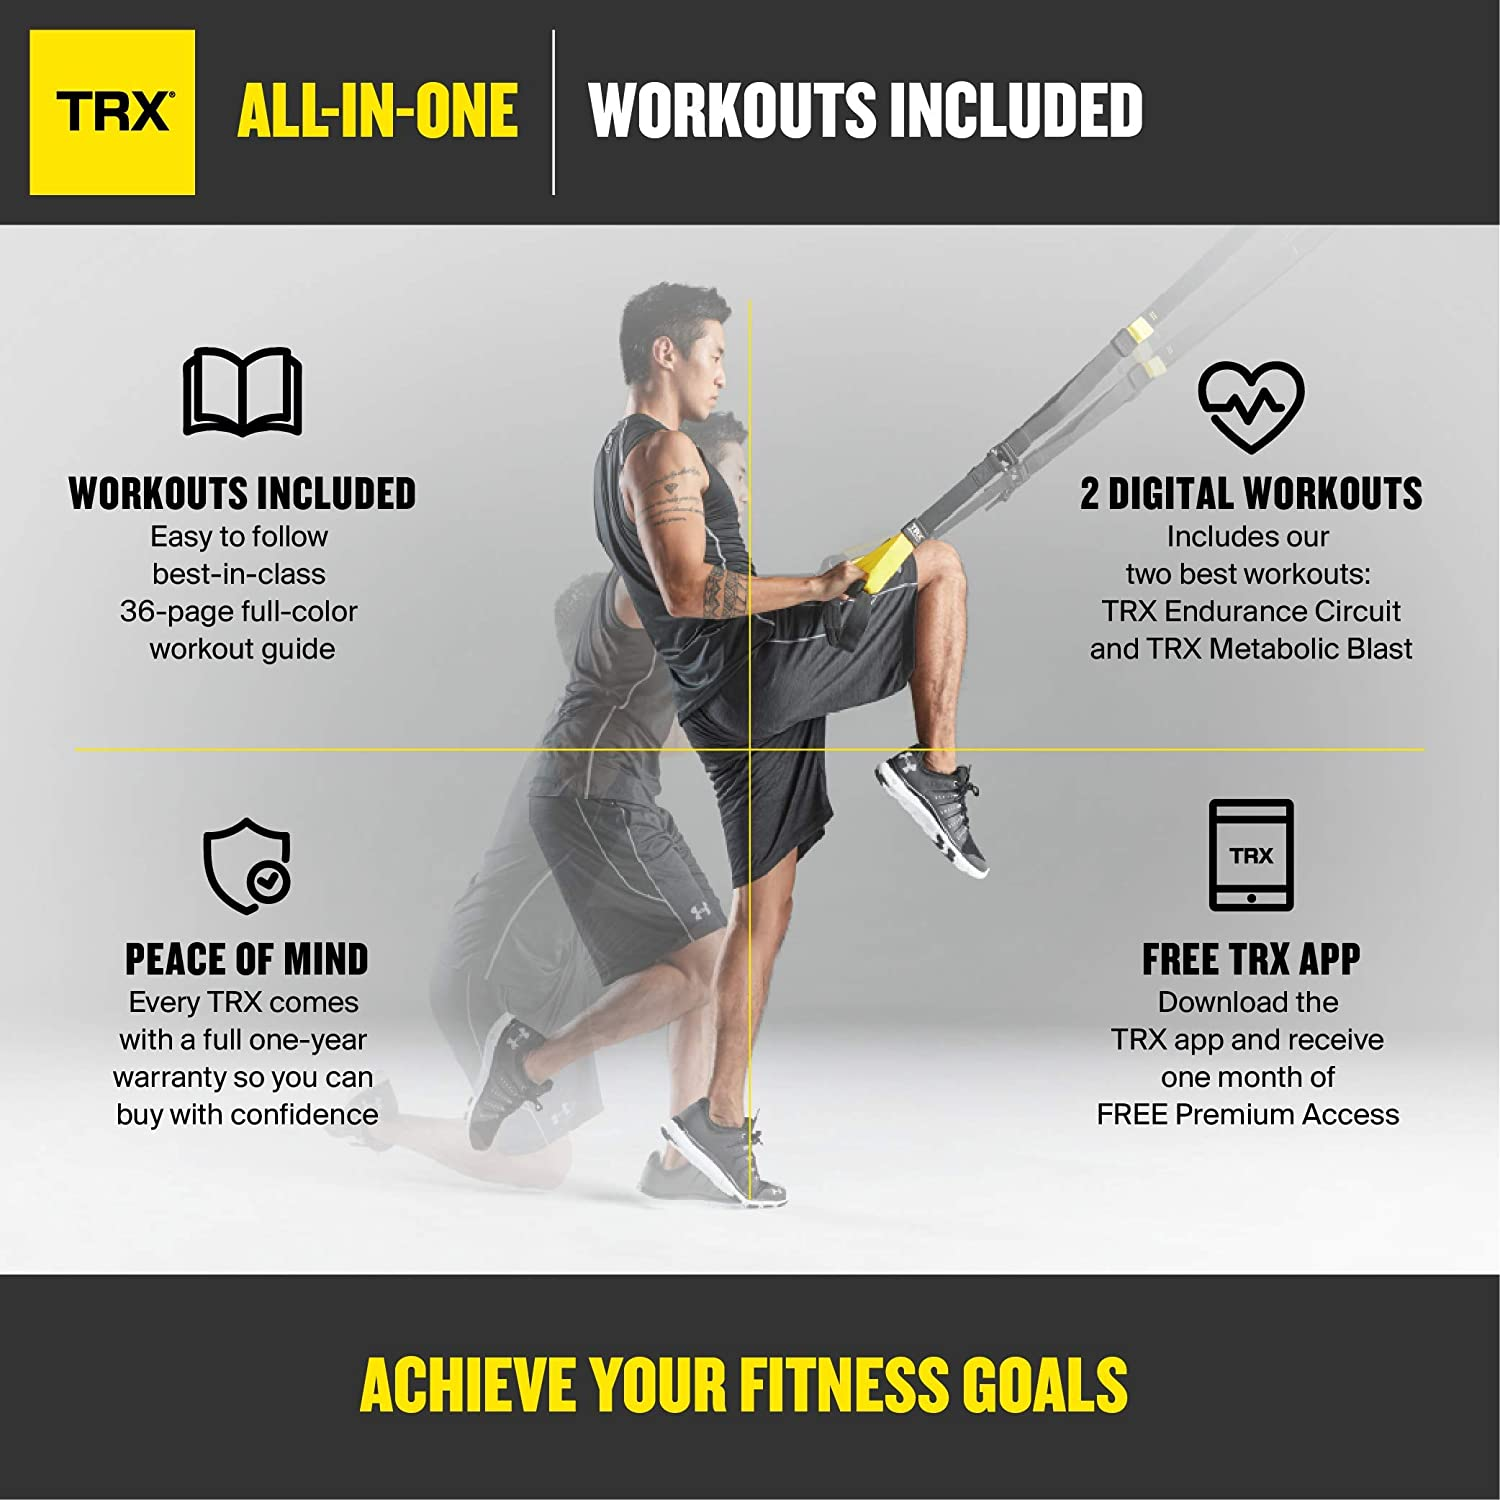 Trx All In One Suspension Training System Full Body The Totalbody Circuit Workout You Can Do While Travel Workouts For Home And Outdoors Includes Indoor Outdoor Anchors Guide